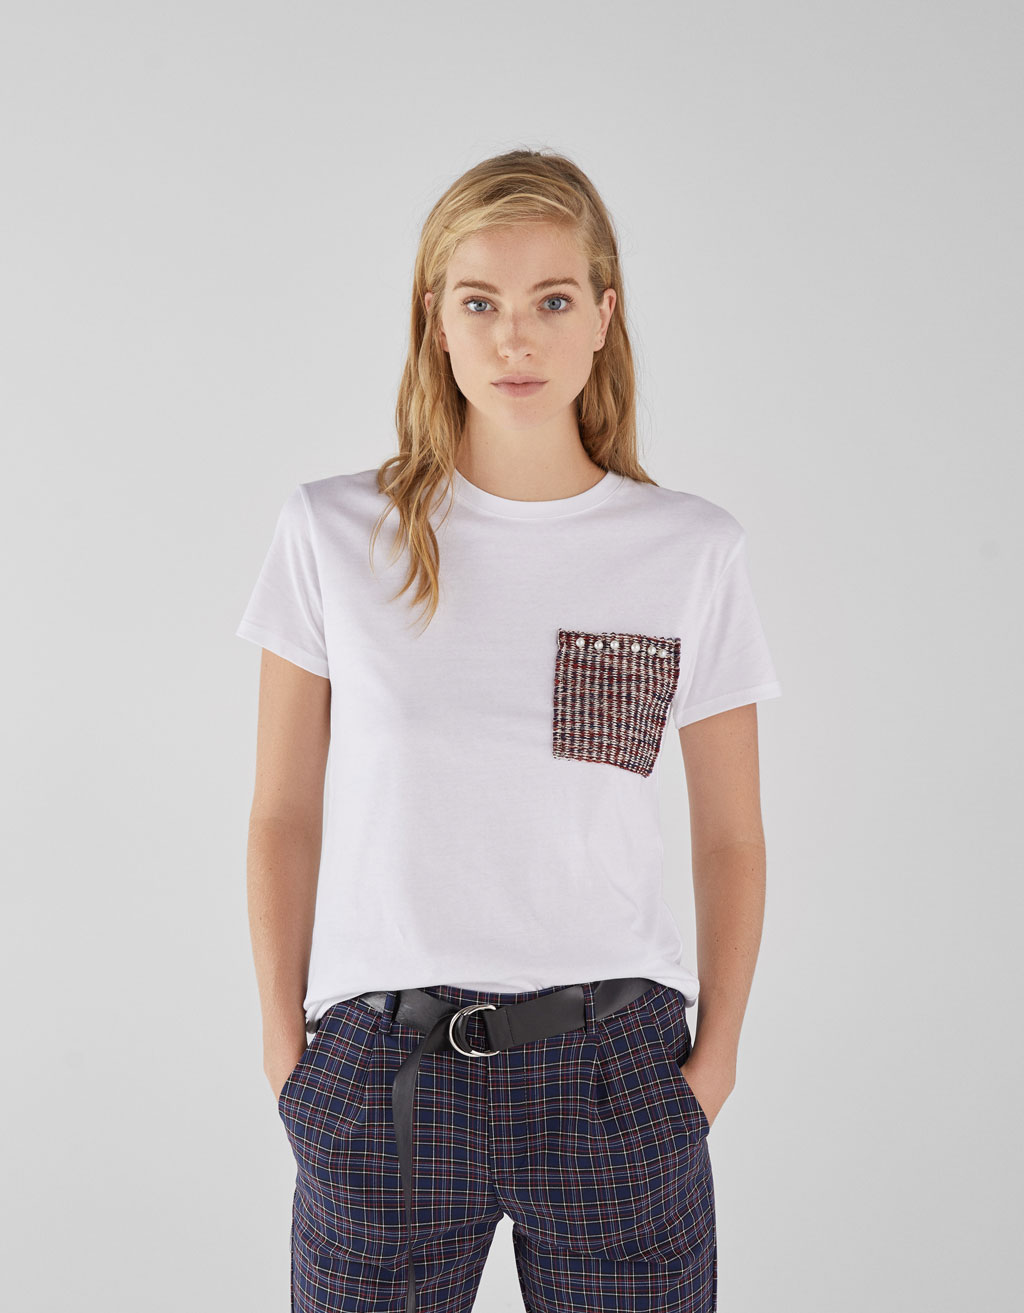 T-shirt with jacquard pocket